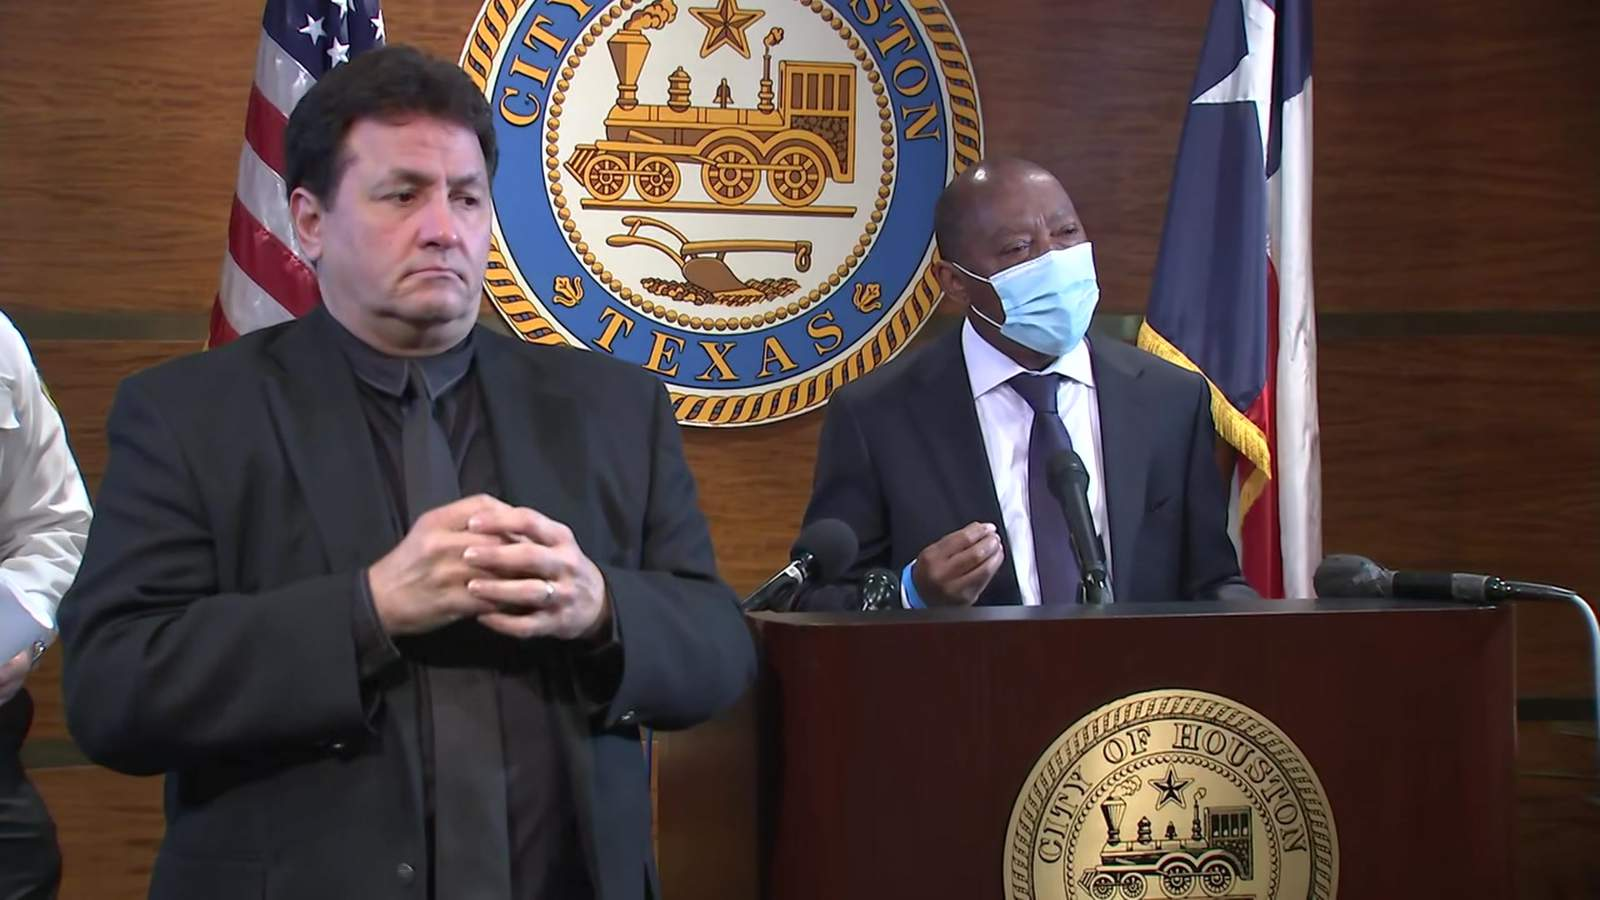 Houston Mayor Sylvester Turner (right) speaks at a news conference at City Hall on March 15, 2021.